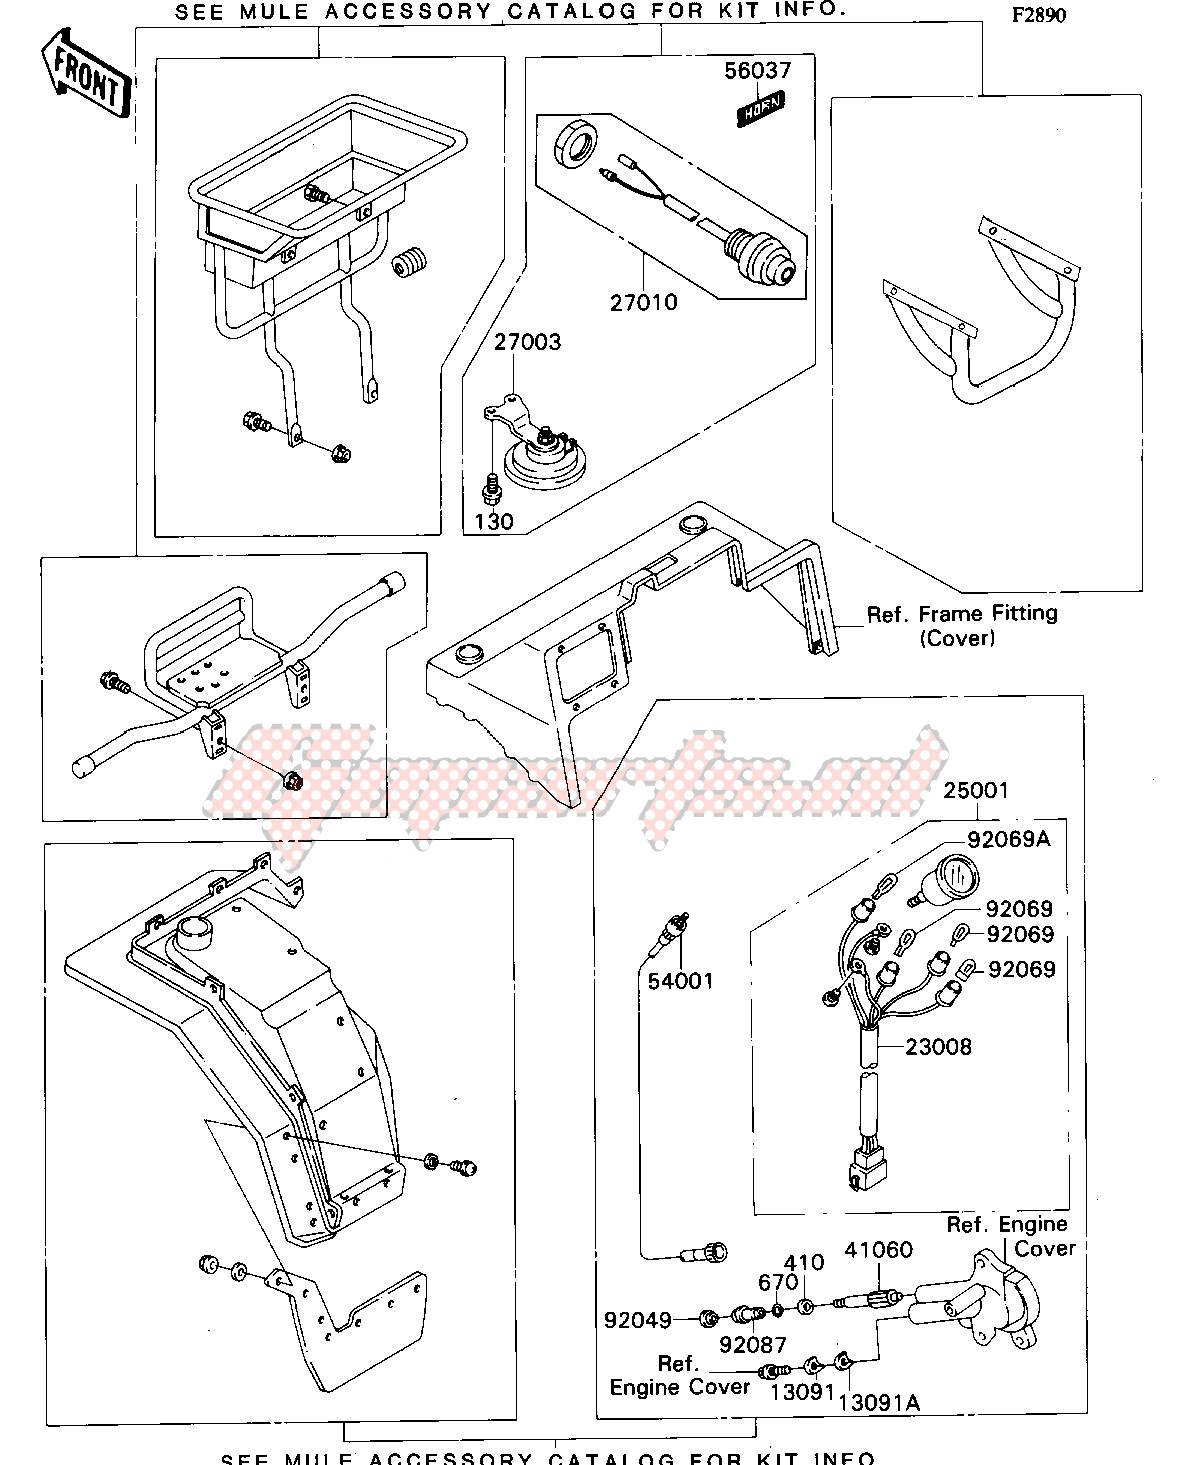 Accessories-OPTIONAL PARTS-- FRONT- -